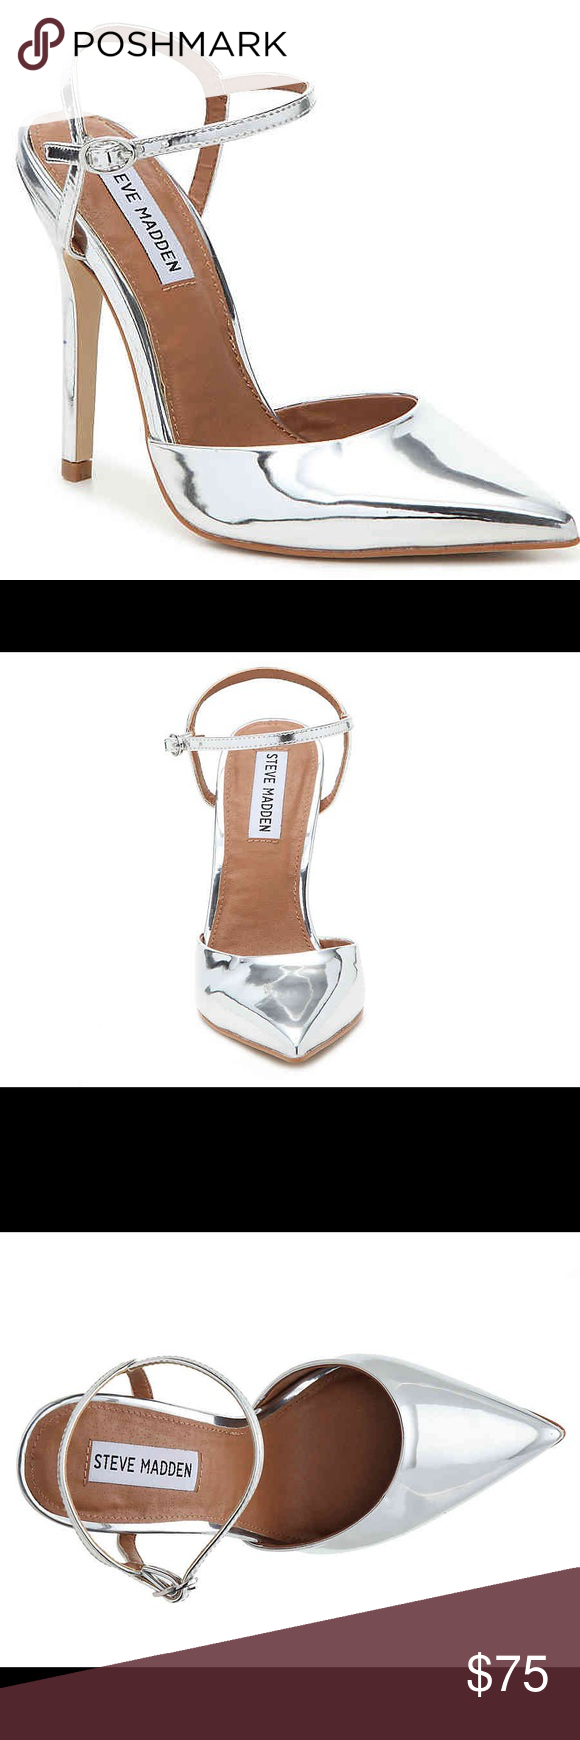 626f76630b4 🌟NWT🌟 Steve Madden pizzel silver pump Faux leather upper Adjustable  buckle strap Pointed toe Faux leather lining Padded footbed 4½